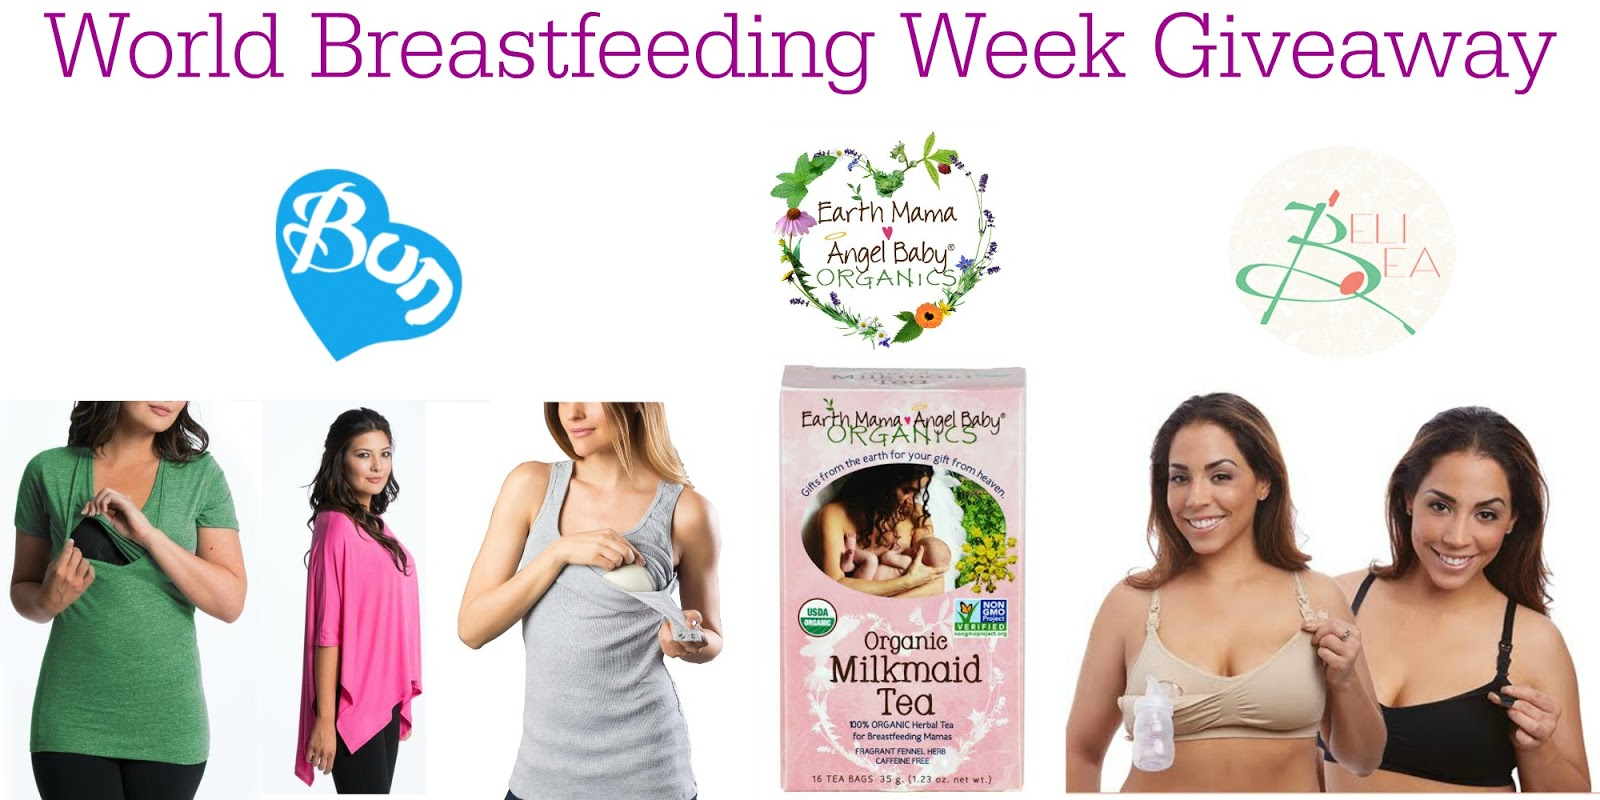 524e9f7bec1a3 World Breastfeeding Week Giveaway, Ends 8/15 - Nanny to Mommy